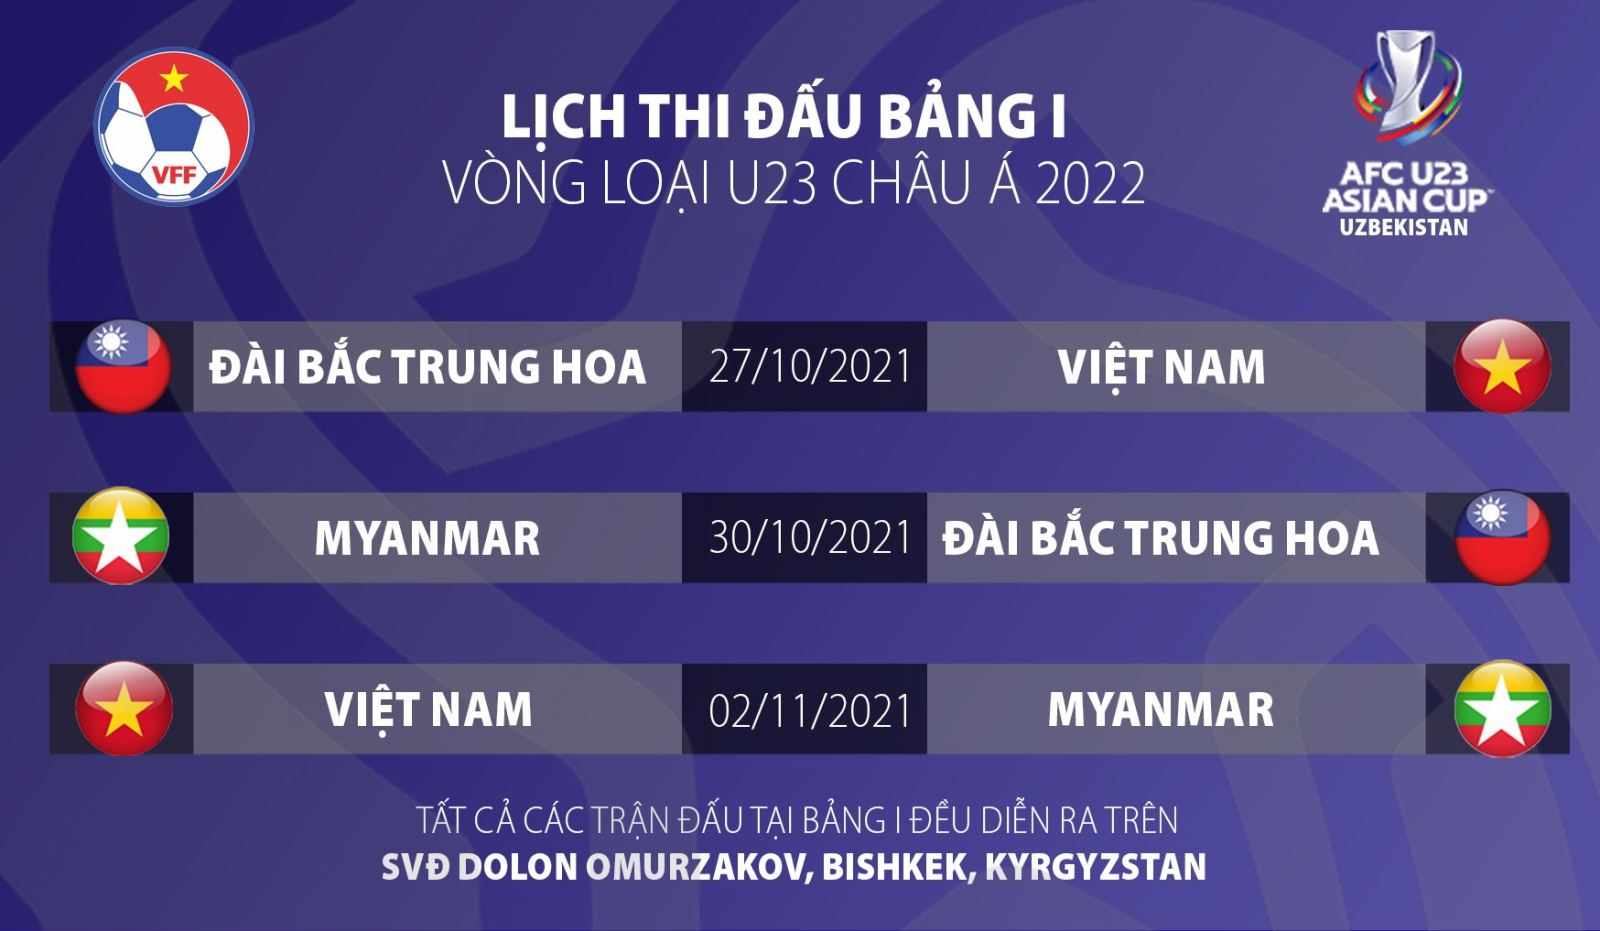 The dense schedule of the Vietnamese teams put a lot of weight on Mr. Park's shoulders at the end of year 2